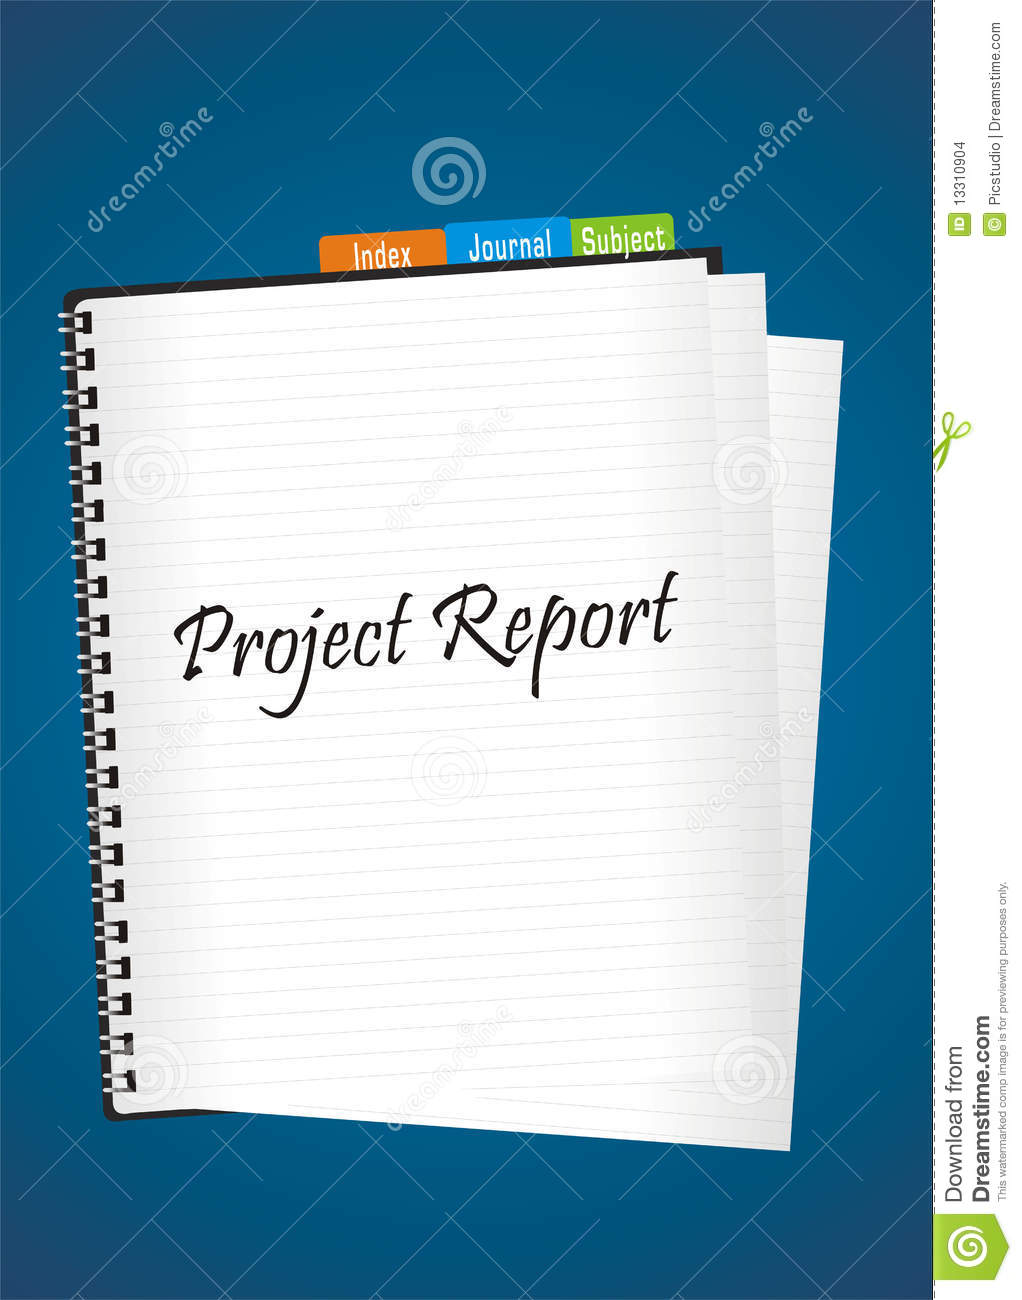 Project report stock illustration. Illustration of blue - 13310904